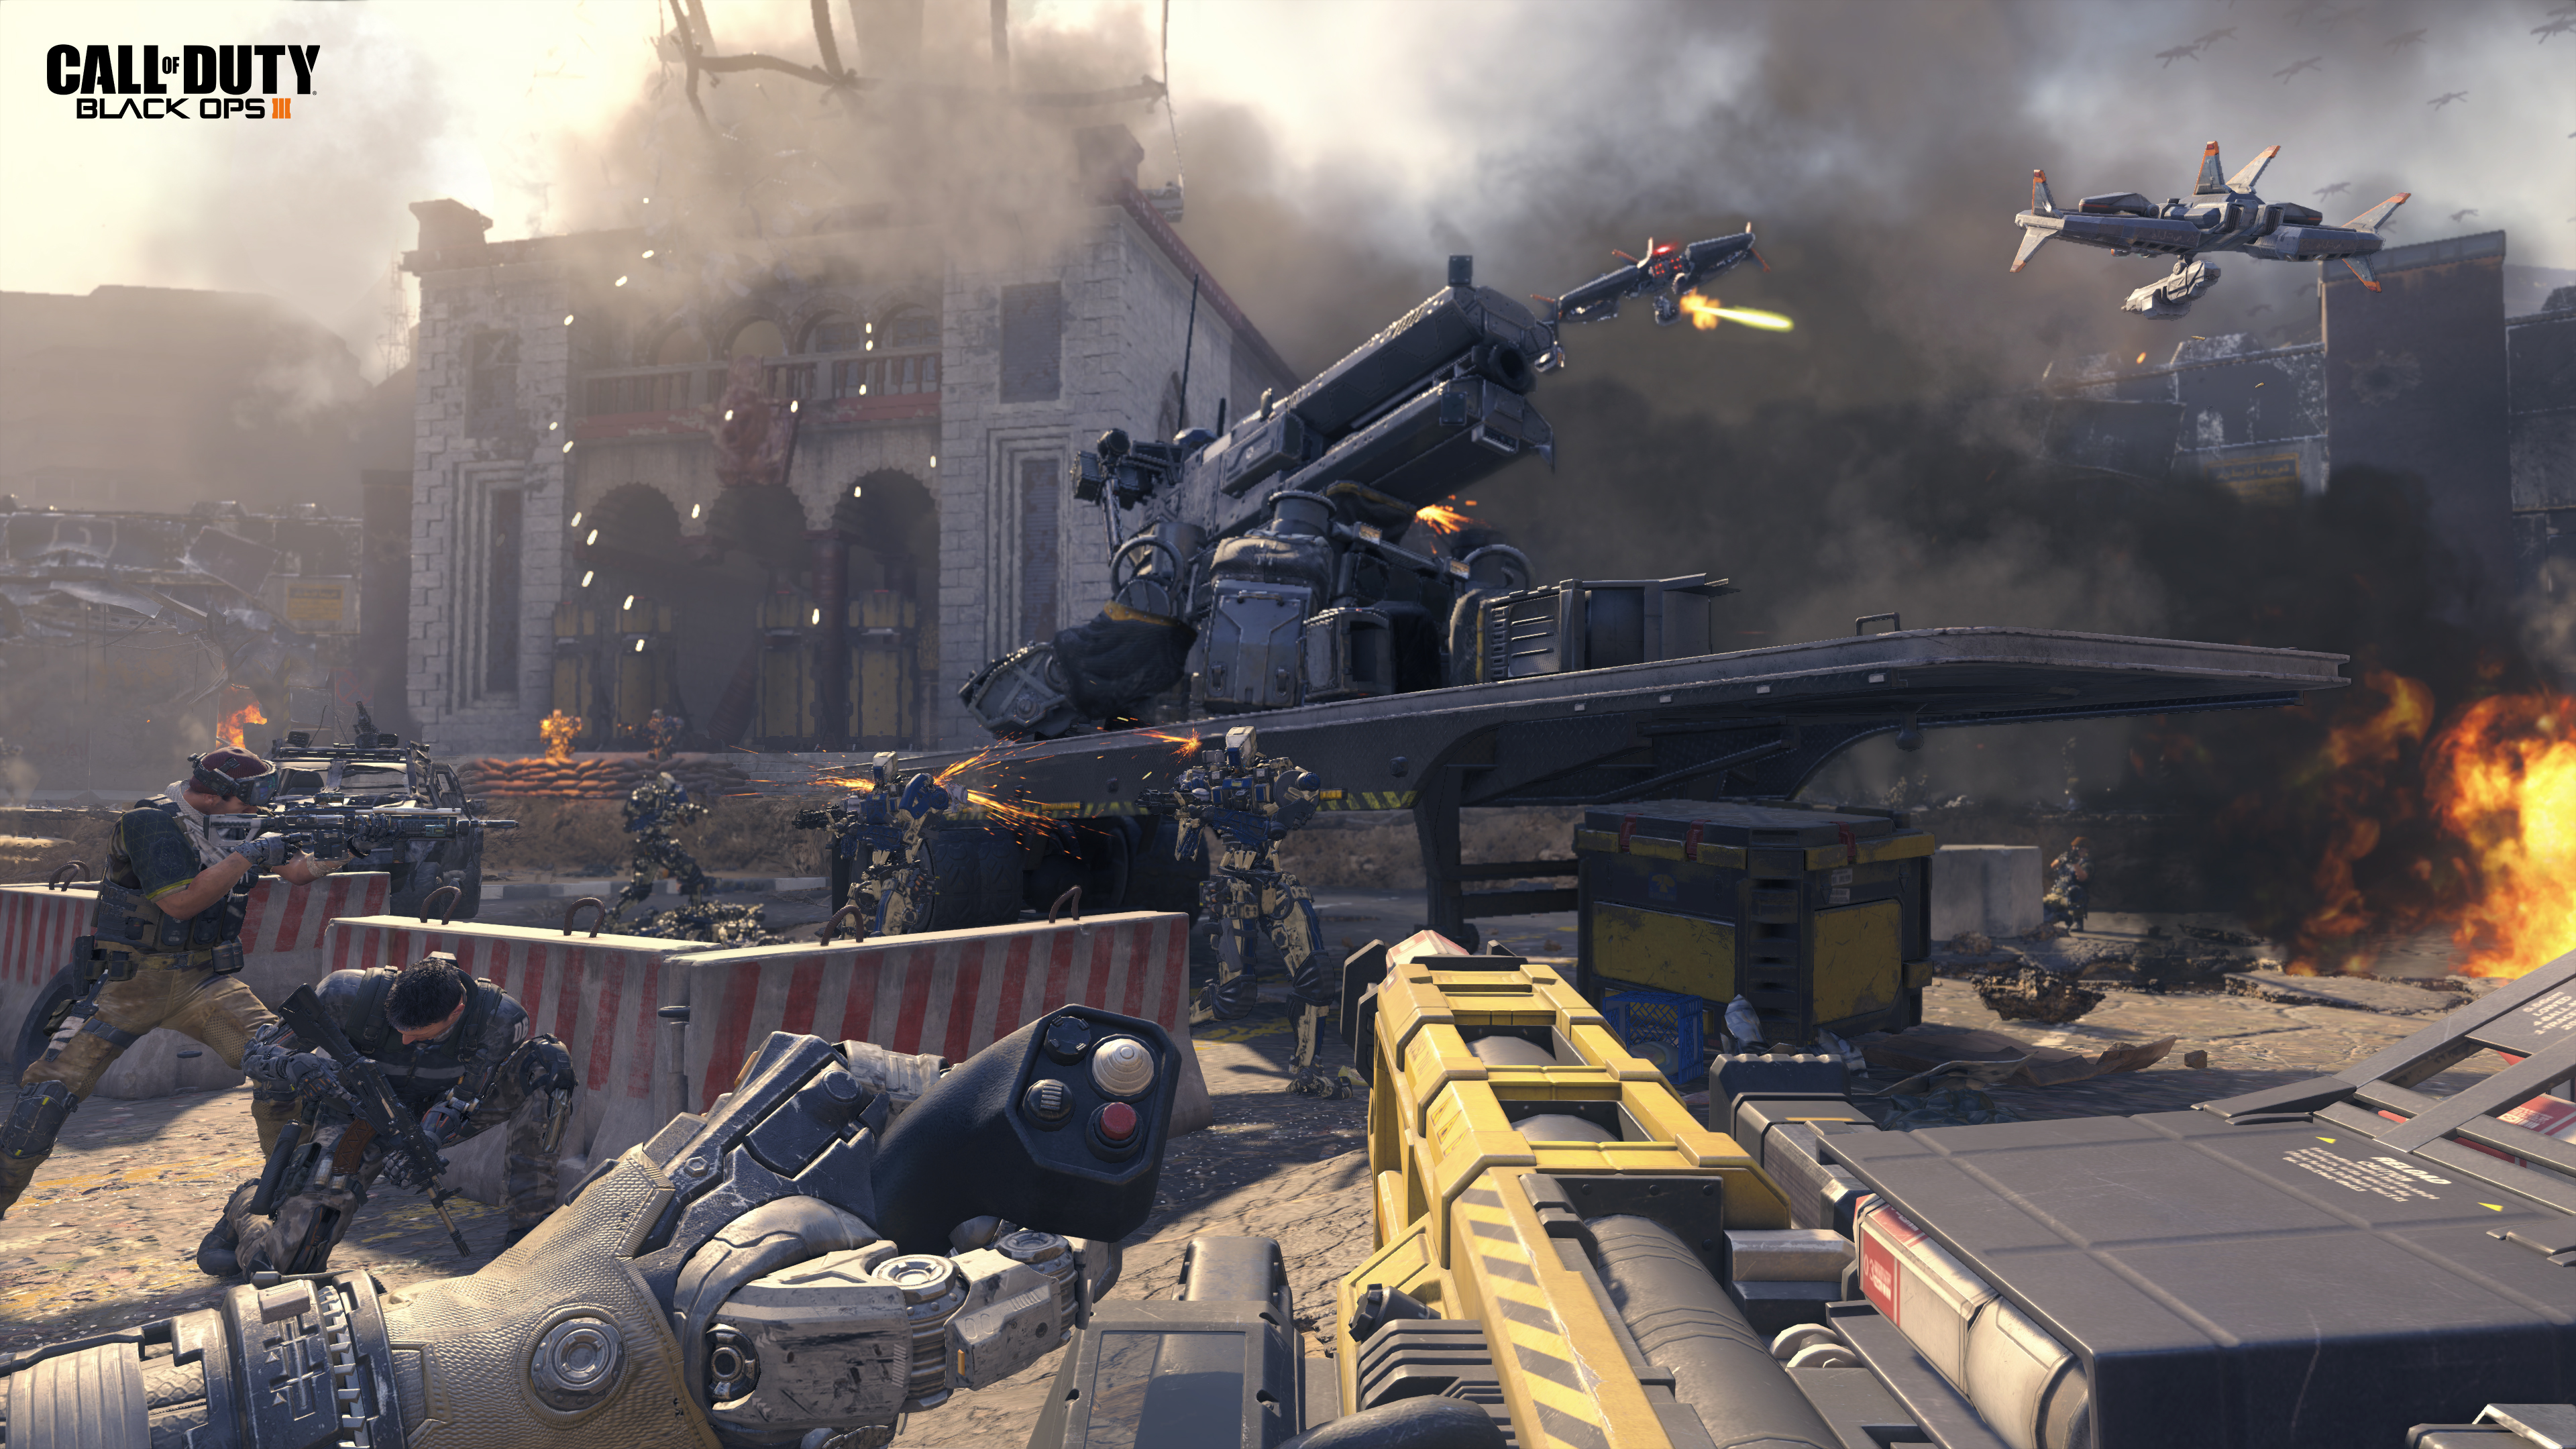 E3 2015 Sony Showcases Call Of Duty Black Ops 3 Multiplayer